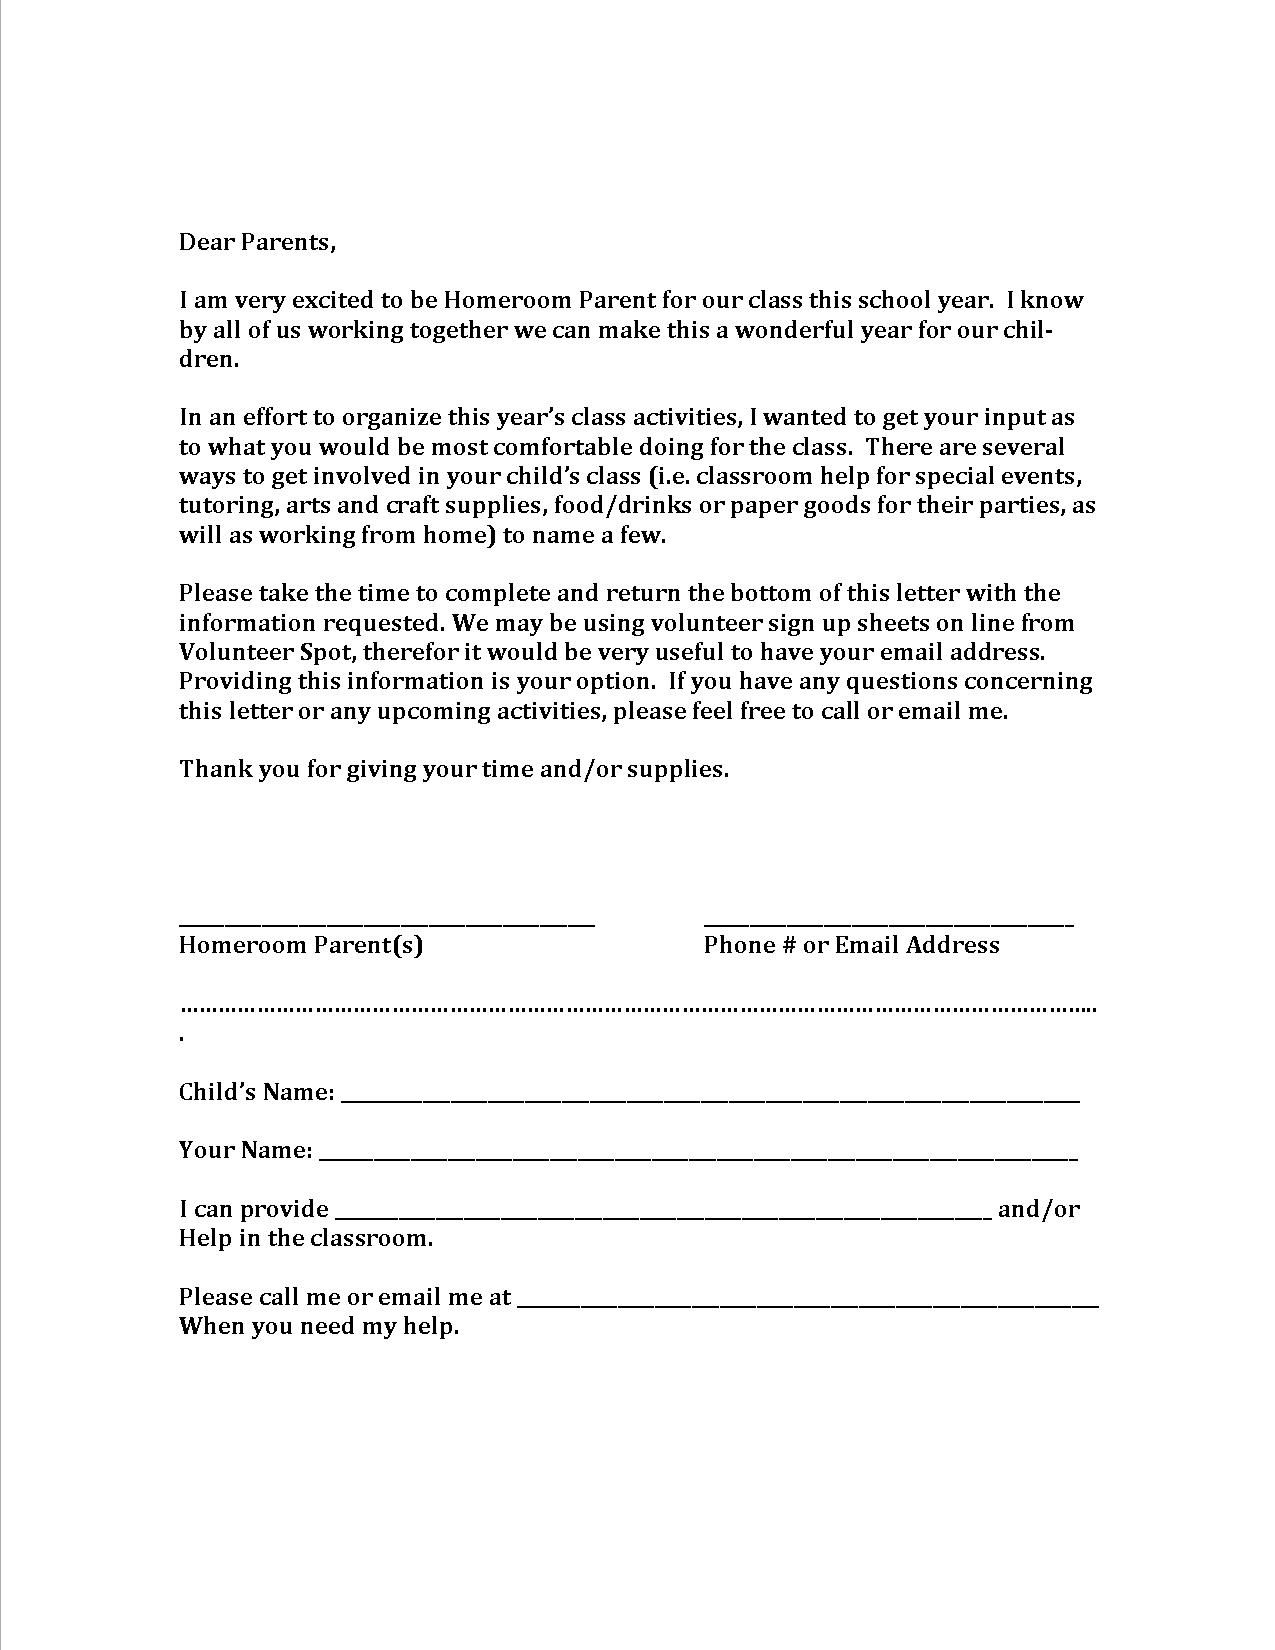 Business letter format 2018 invitation letter template for us our battle tested template designs are proven to land interviews download for free for commercial or non commercial projects youre sure to find spiritdancerdesigns Choice Image